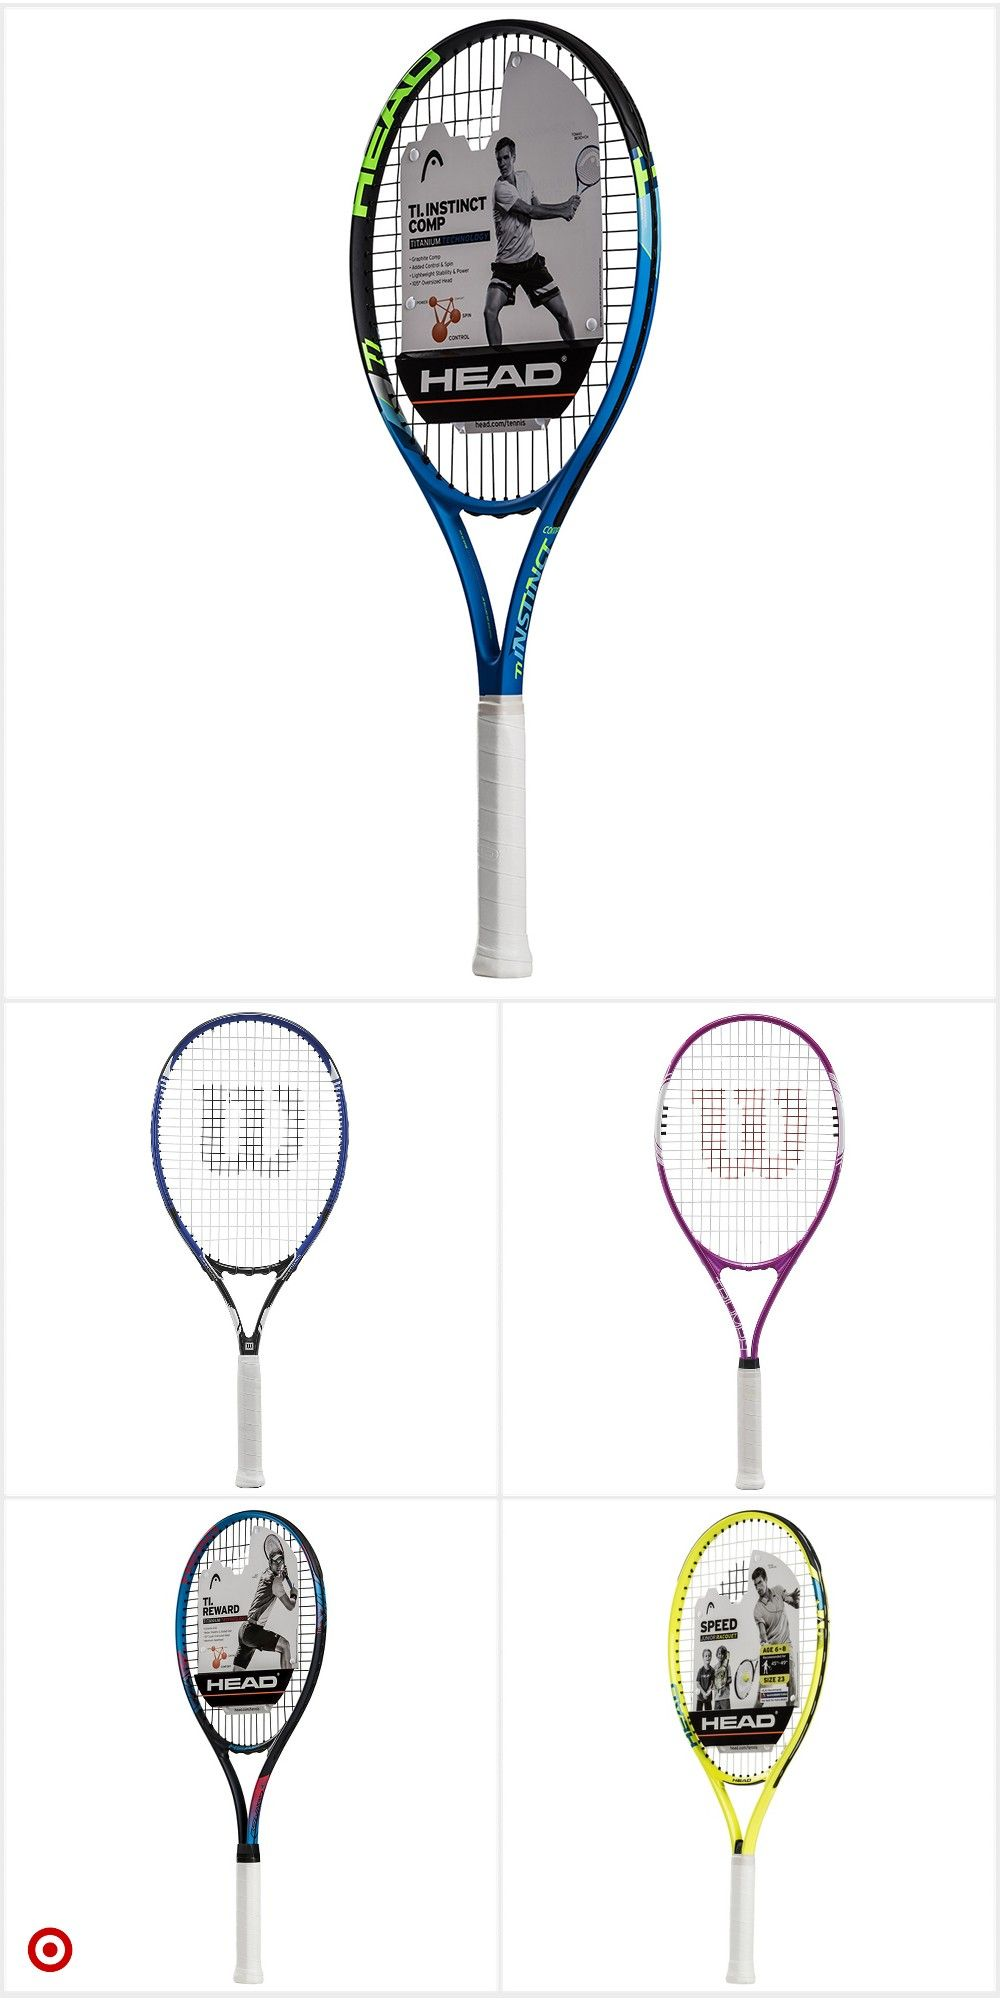 Shop Target For Tennis Racquet You Will Love At Great Low Prices Free Shipping On Orders Of 35 Or Free Same Day Pick Up In Tennis Tennis Racquet Racquets